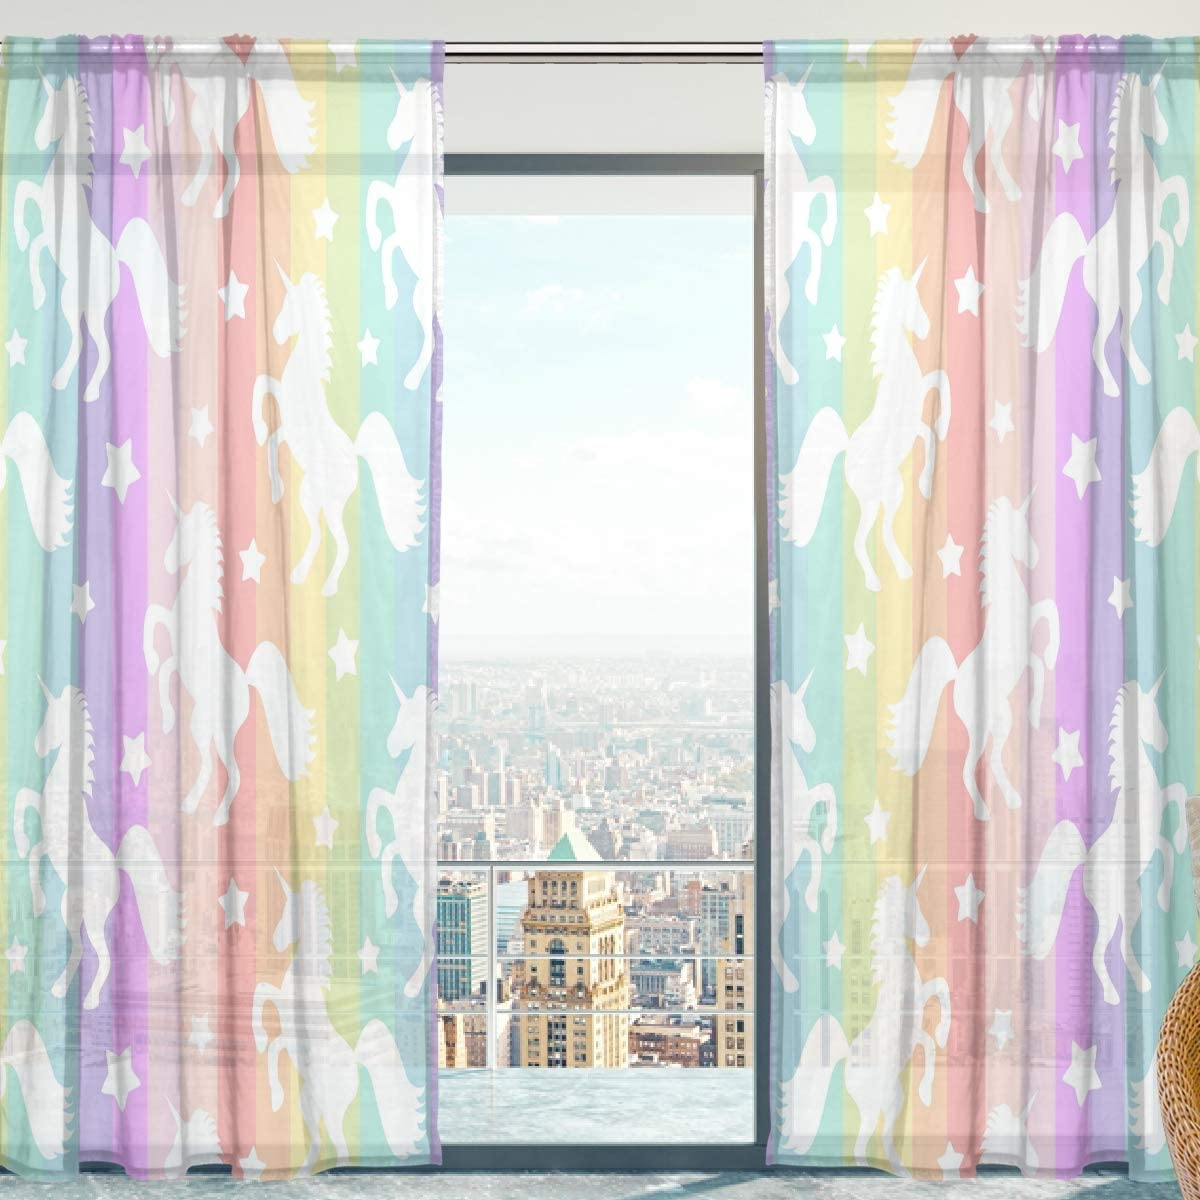 SENYA-Window-Curtain-Panels-With-Colourful-Stripes-For-Rooms